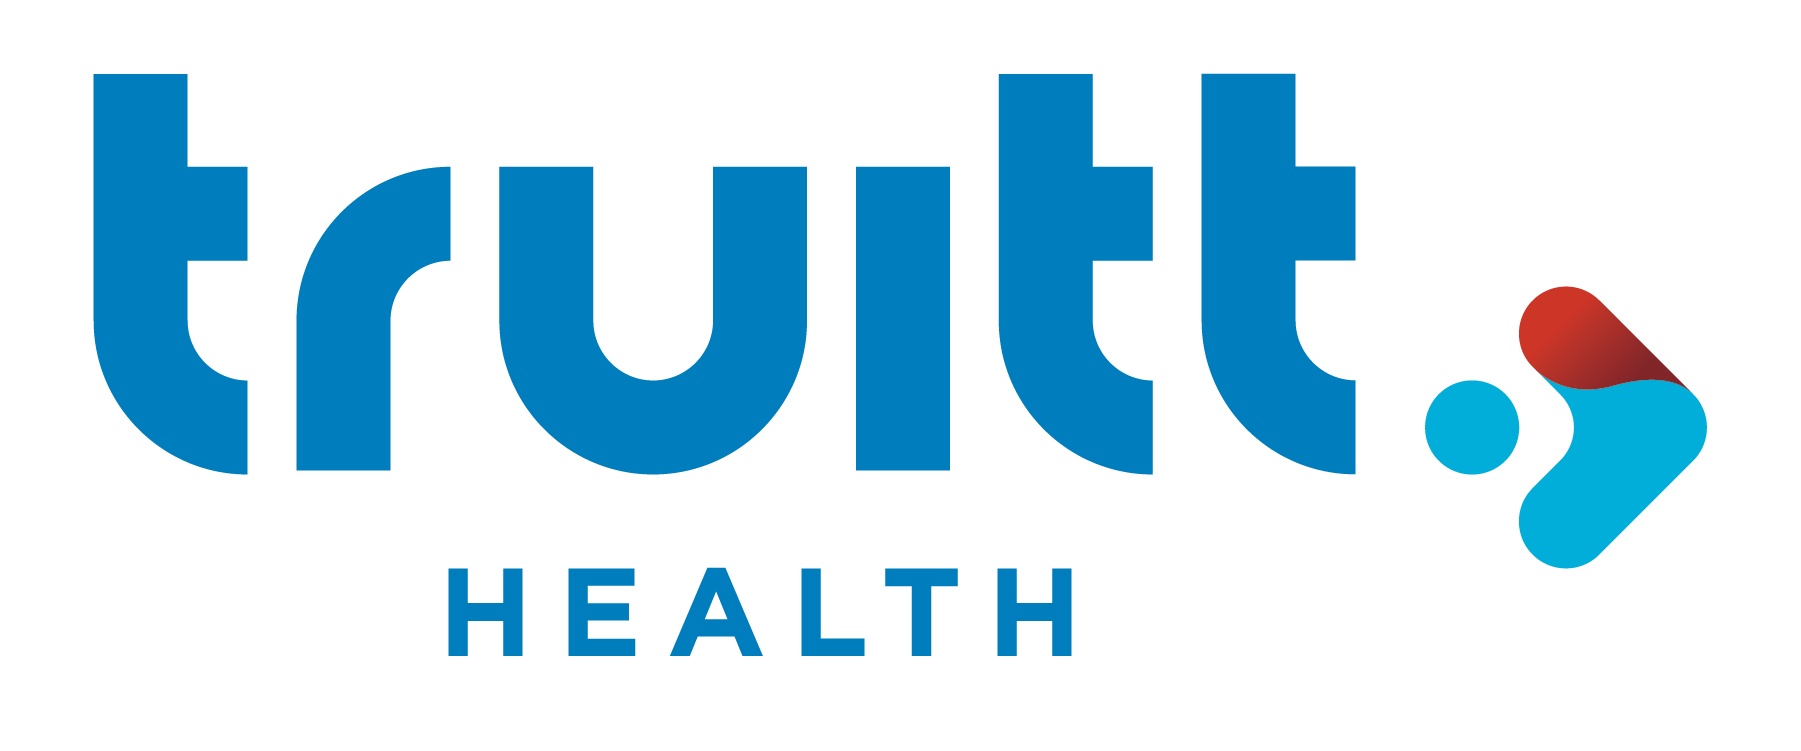 Truitt Health – Expert Advice When You Need It